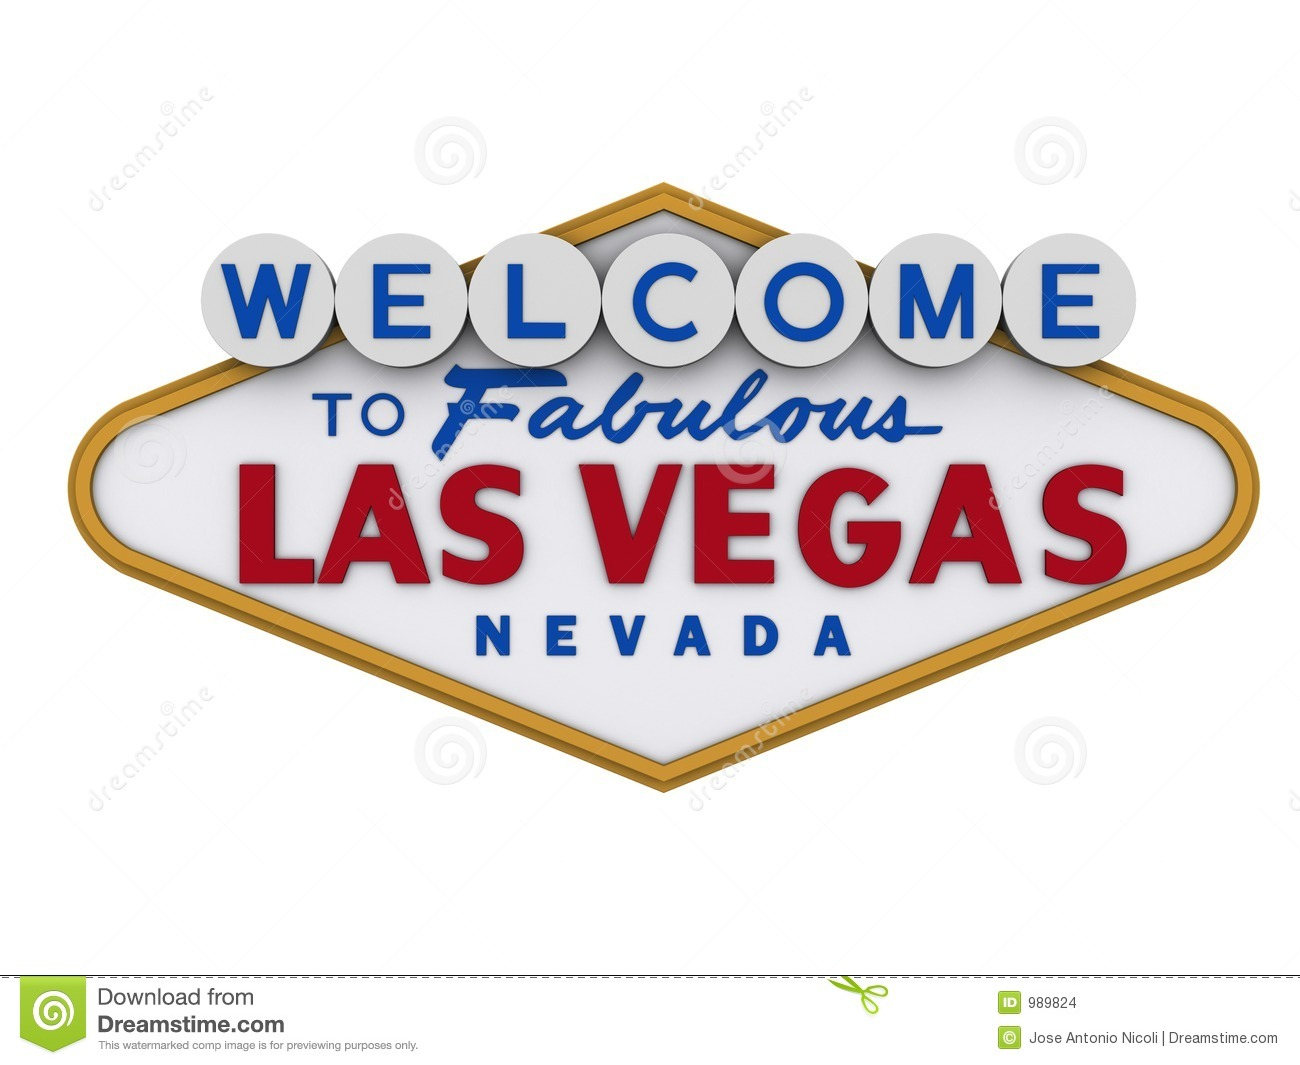 Las Vegas Sign in white backgropund, easy to isolate.